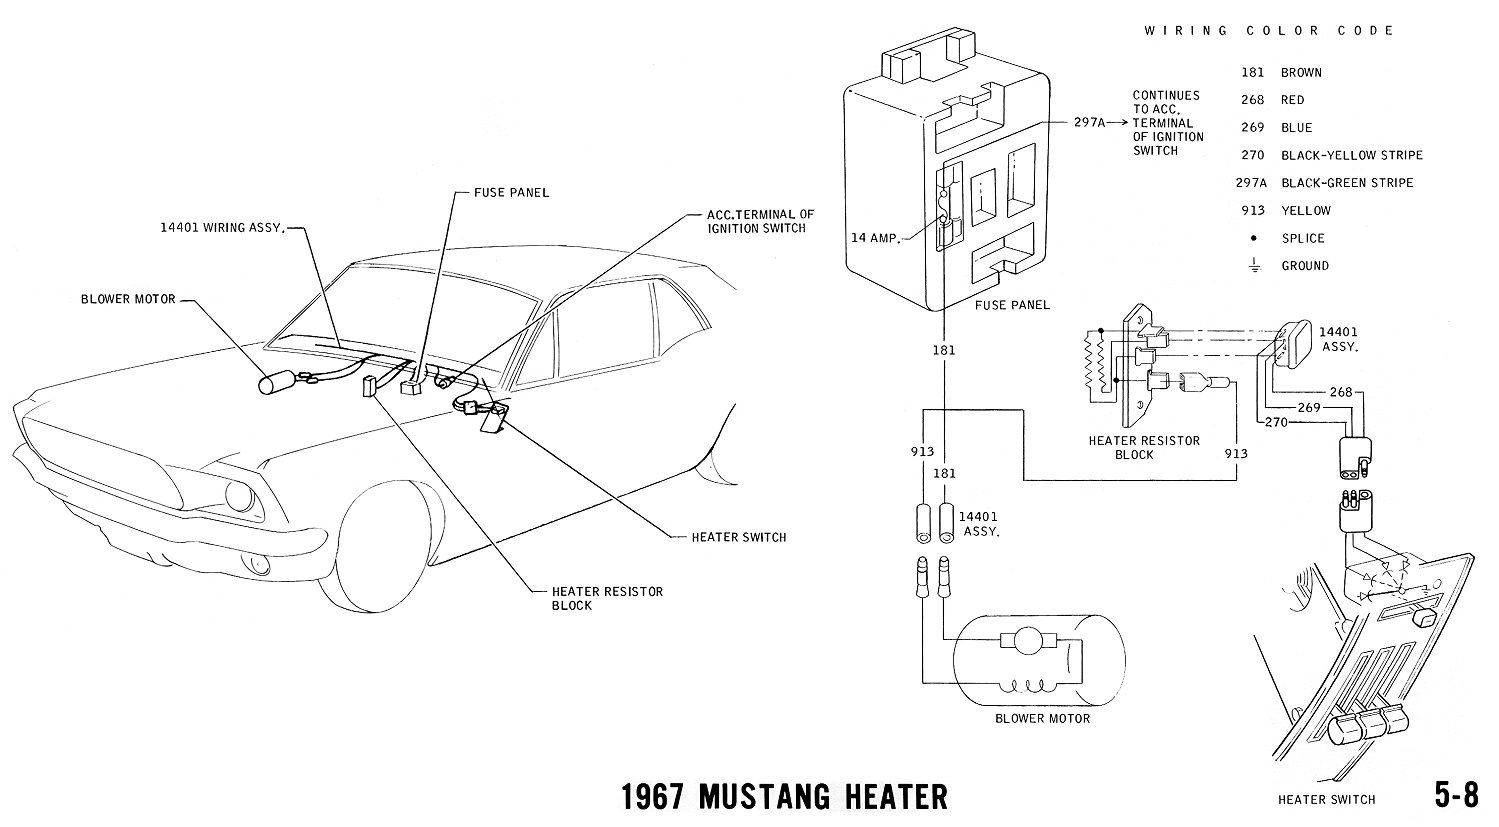 hight resolution of 1966 ford mustang heater wiring diagram wiring diagram third level 1966 mustang alternator wiring diagram 1966 mustang heater wiring diagram